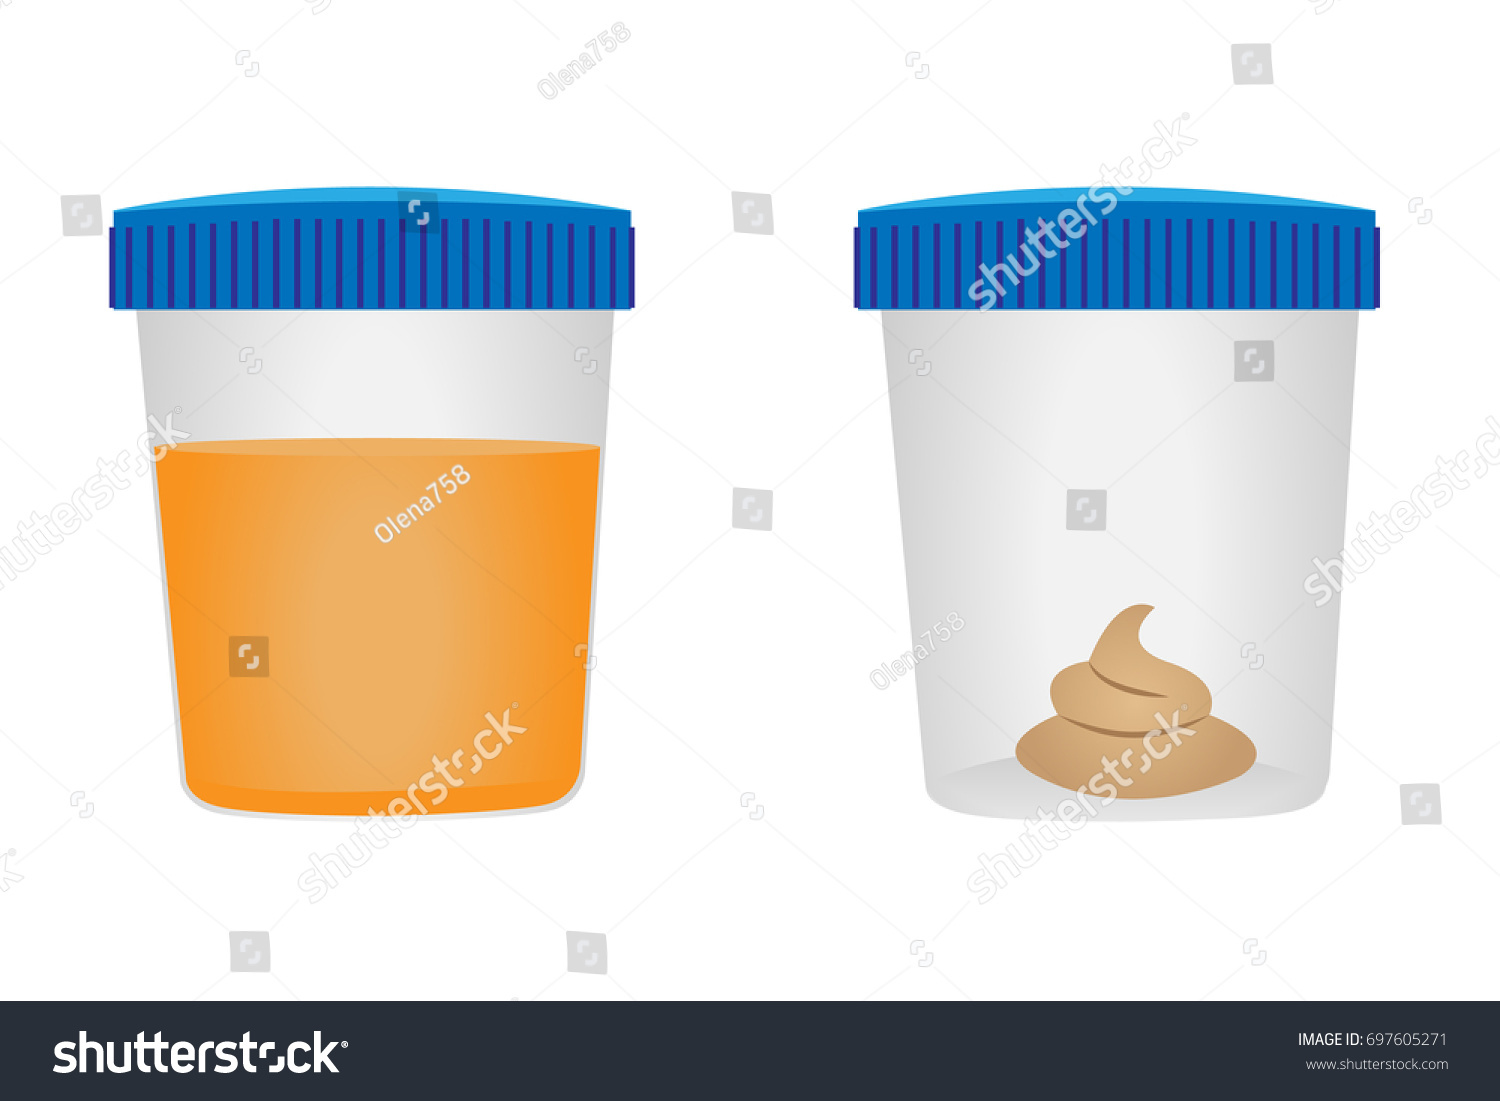 Stool Urina Test Medical Examination Vector Stock